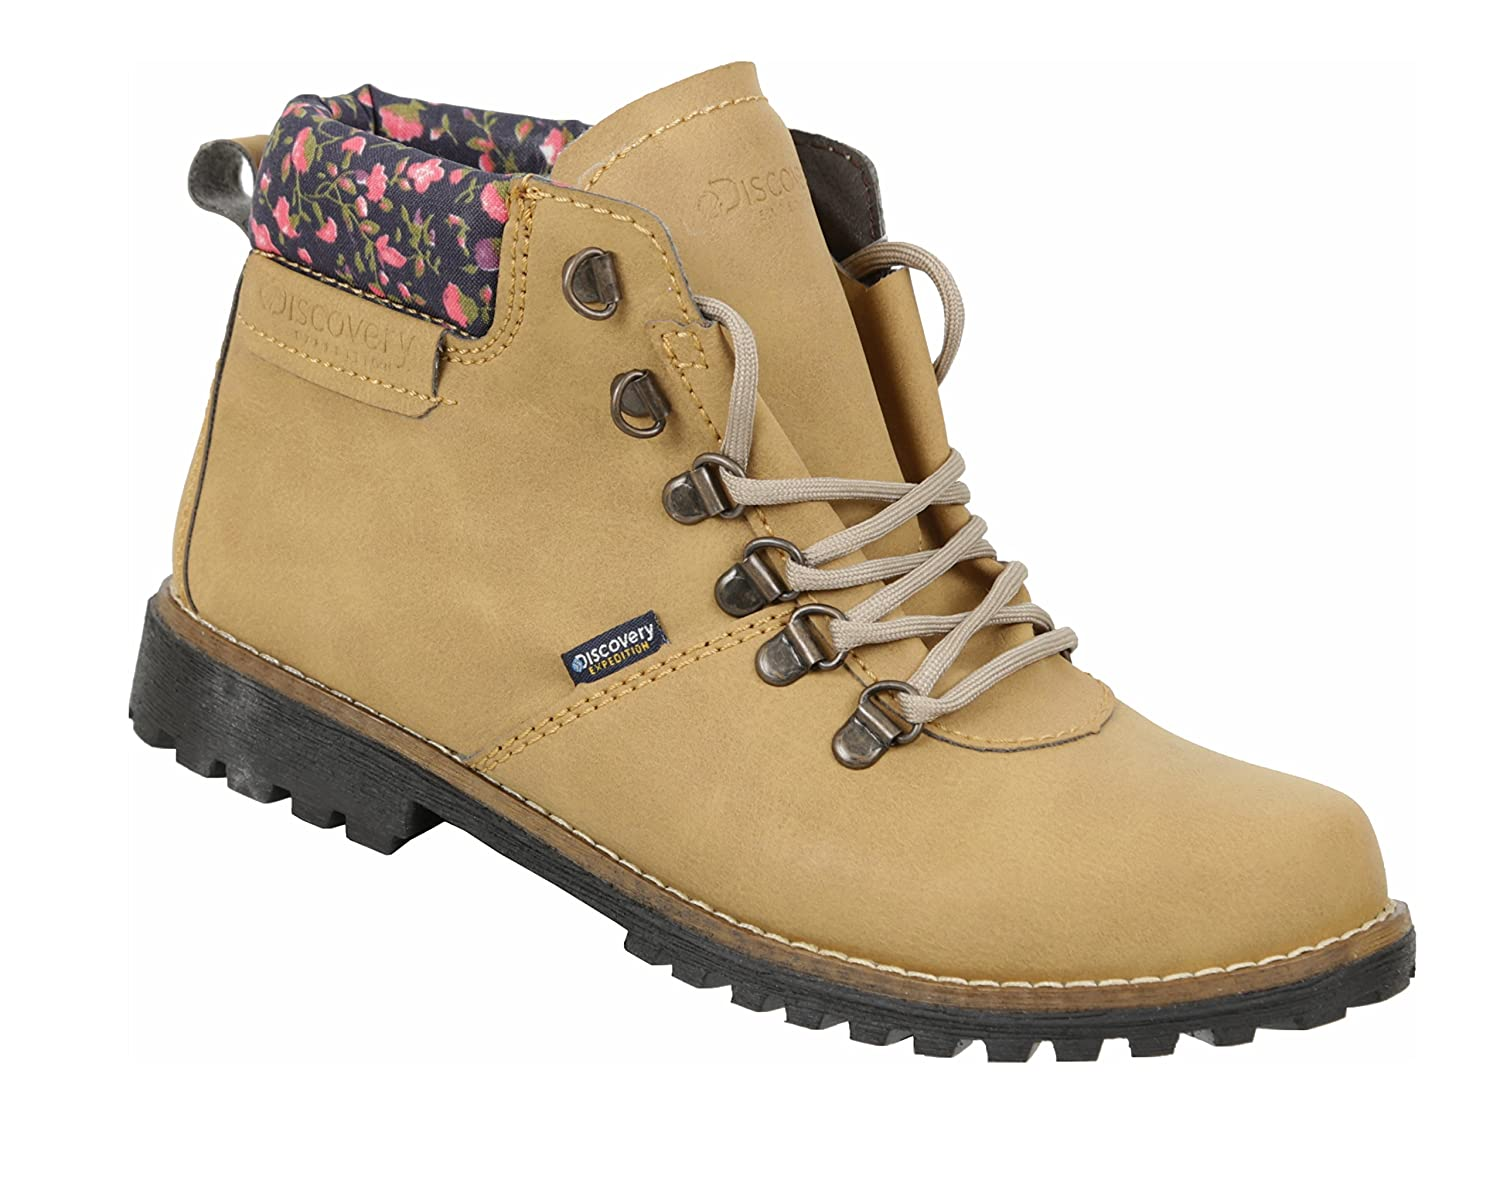 Discovery Expedition Women's Ankle High Outdoor B078JZDXC5 Boot w/Fashion Patterened Trim B078JZDXC5 Outdoor 6 B(M) US Honey-floral 4c9d09